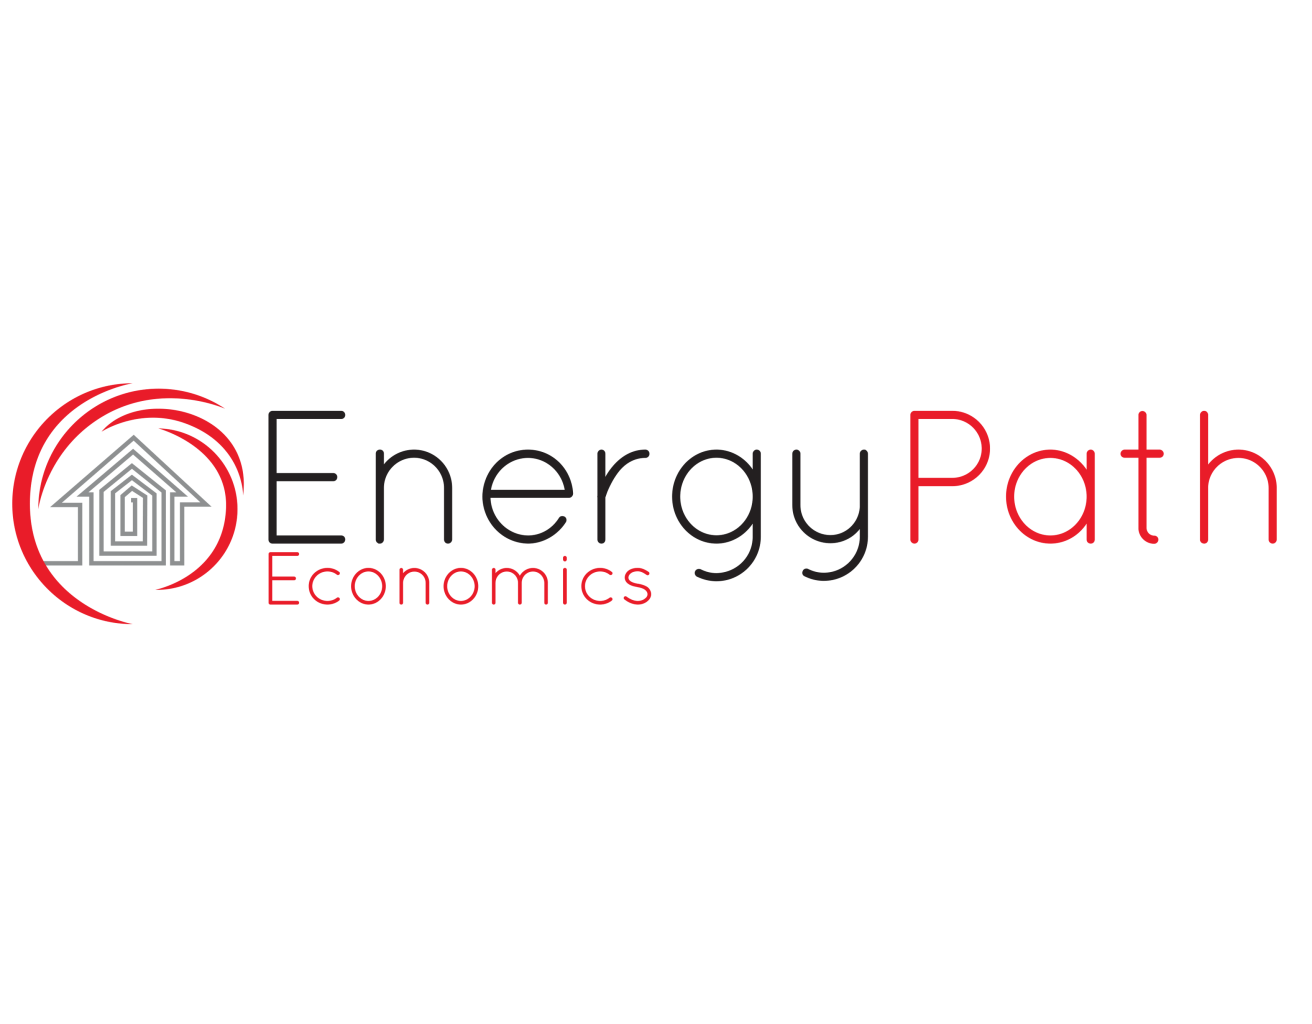 EnergyPath Economics